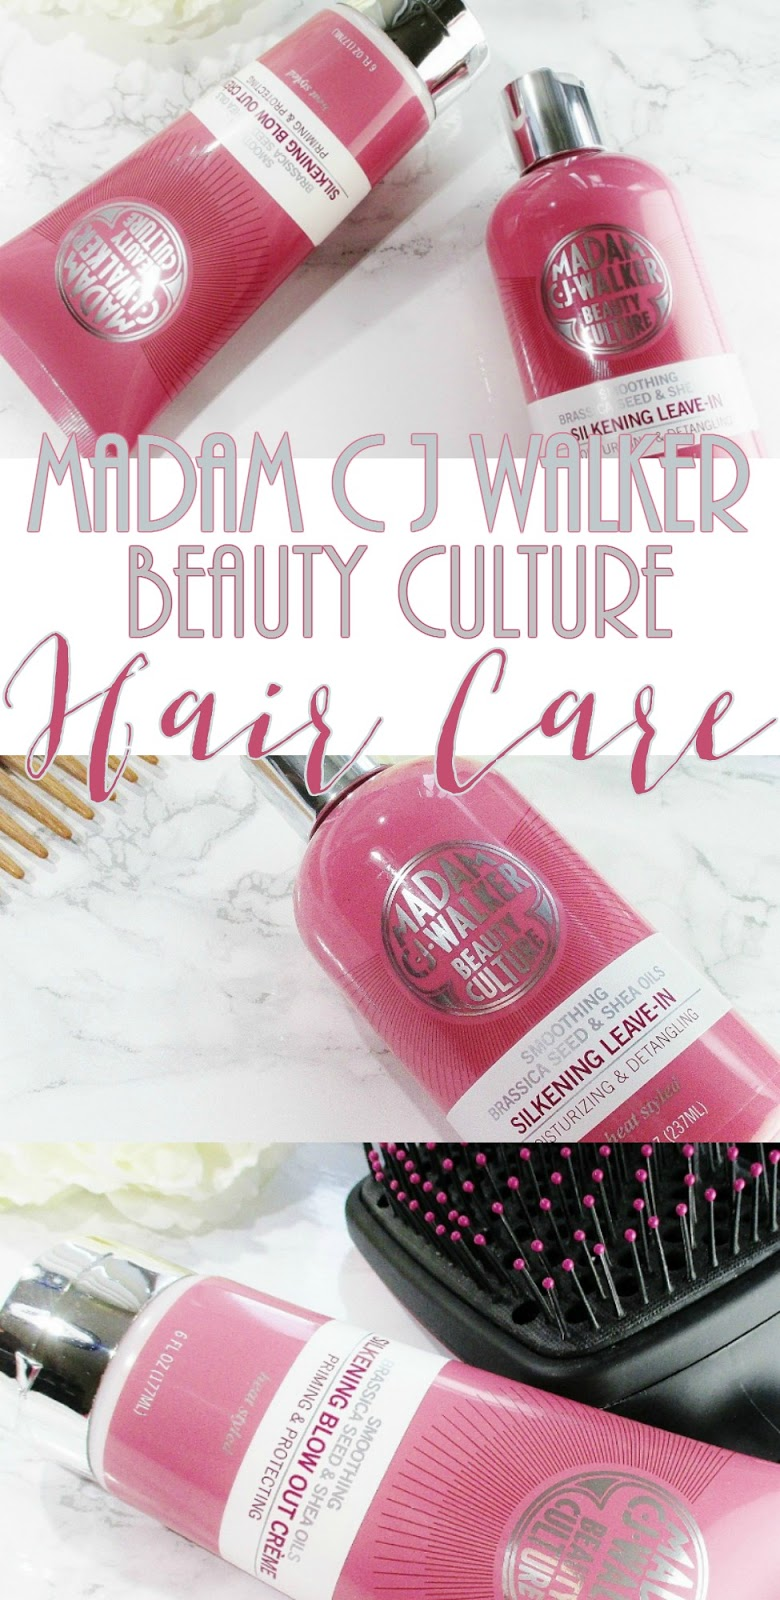 madam-cj-walker-beauty-culture-brassica-seed-&-shea-oils-silkening-leave-in-&-blow-out-creme-review